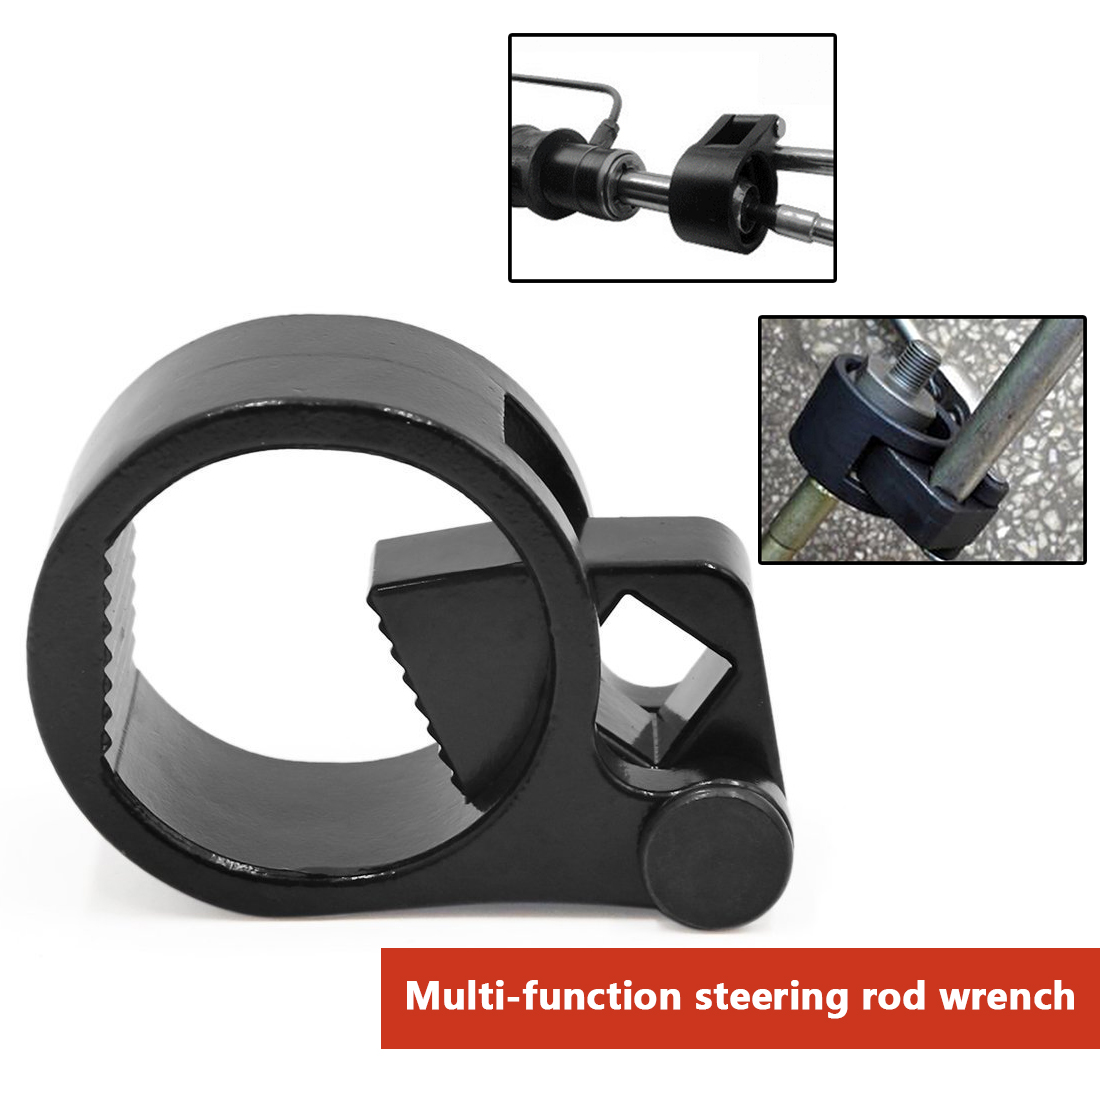 Universal Steering Track Rod Removal Tool Car Steering Rudder Tie Rod Wrench Rudder Ball Joint Removal Wrench Hand Tool